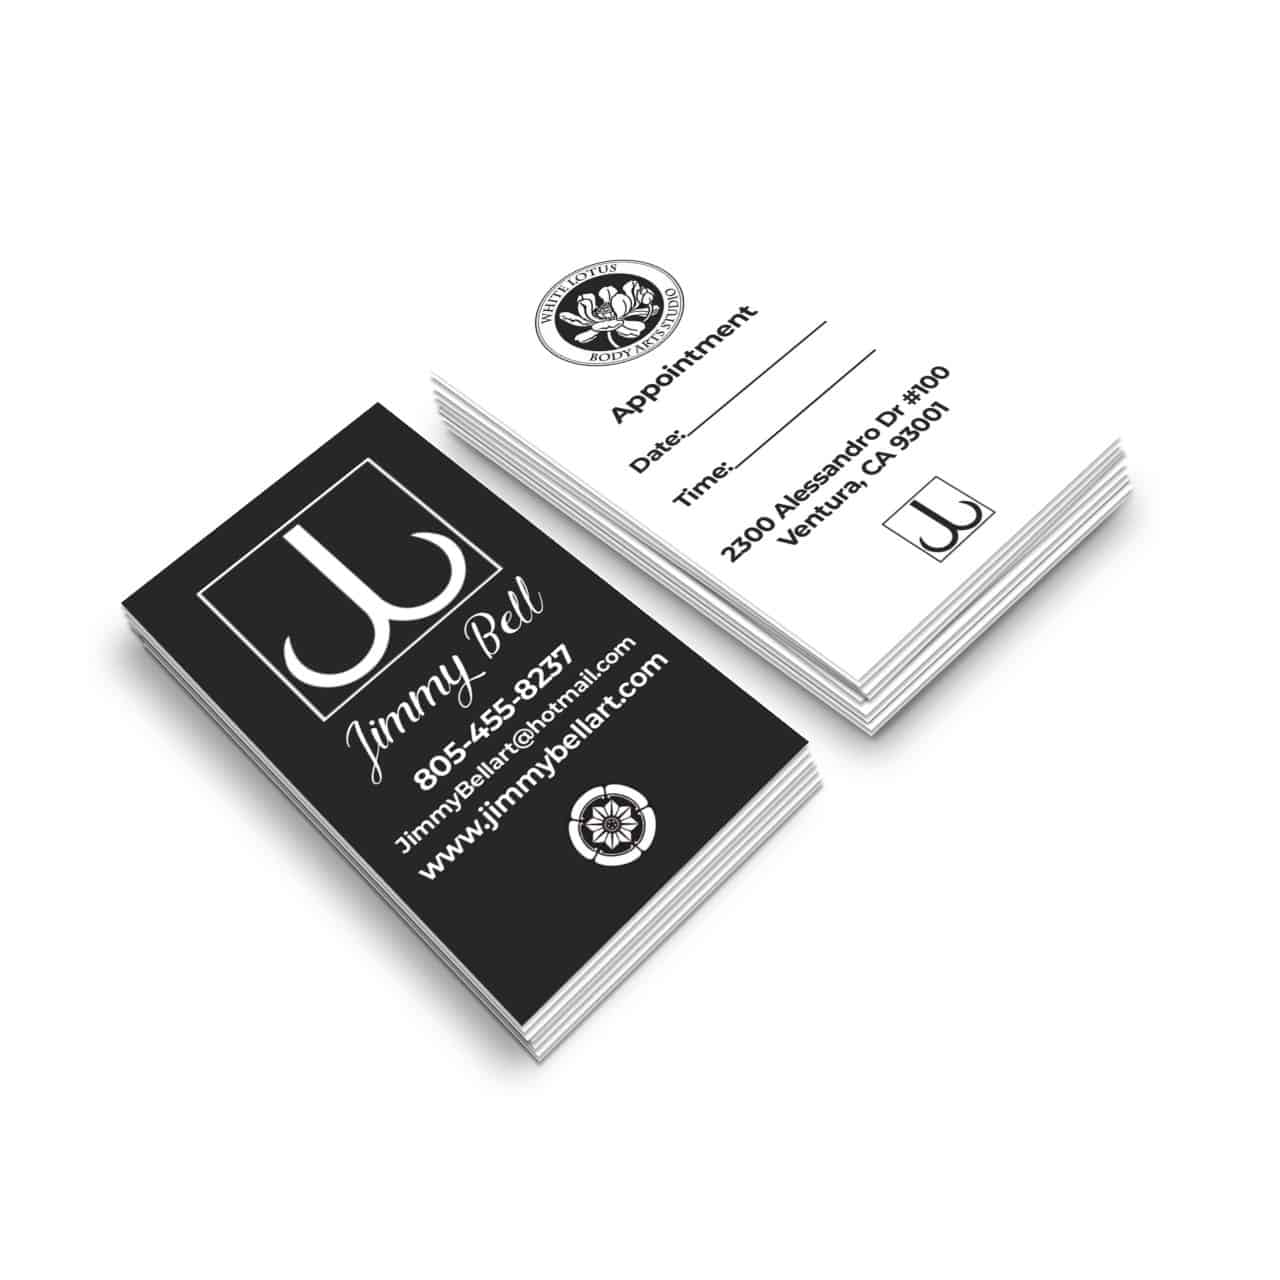 df99c57c Jimmy Bell Business Cards - Shinybot